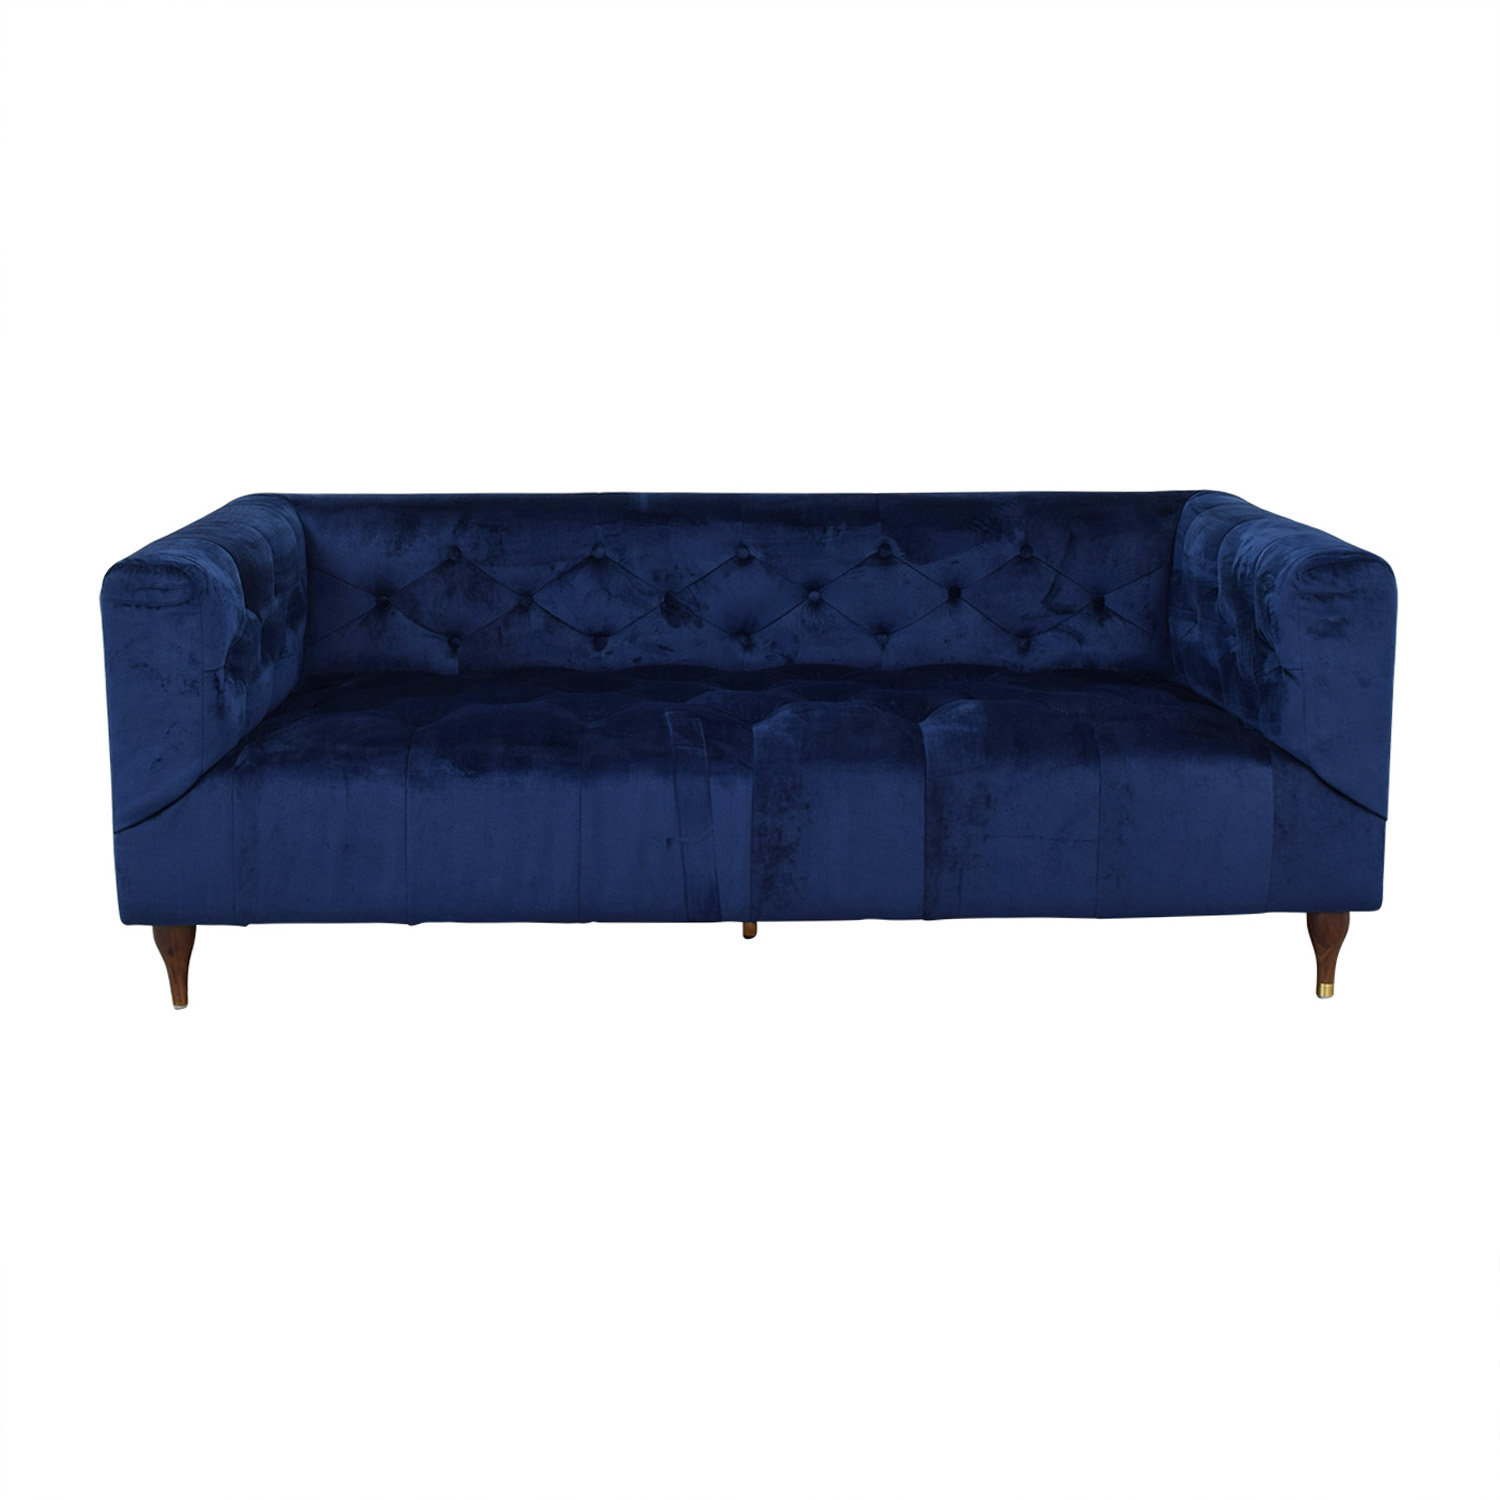 shop Ms. Chesterfield Velvet Oxford Blue Tufted Sofa Interior Define Classic Sofas